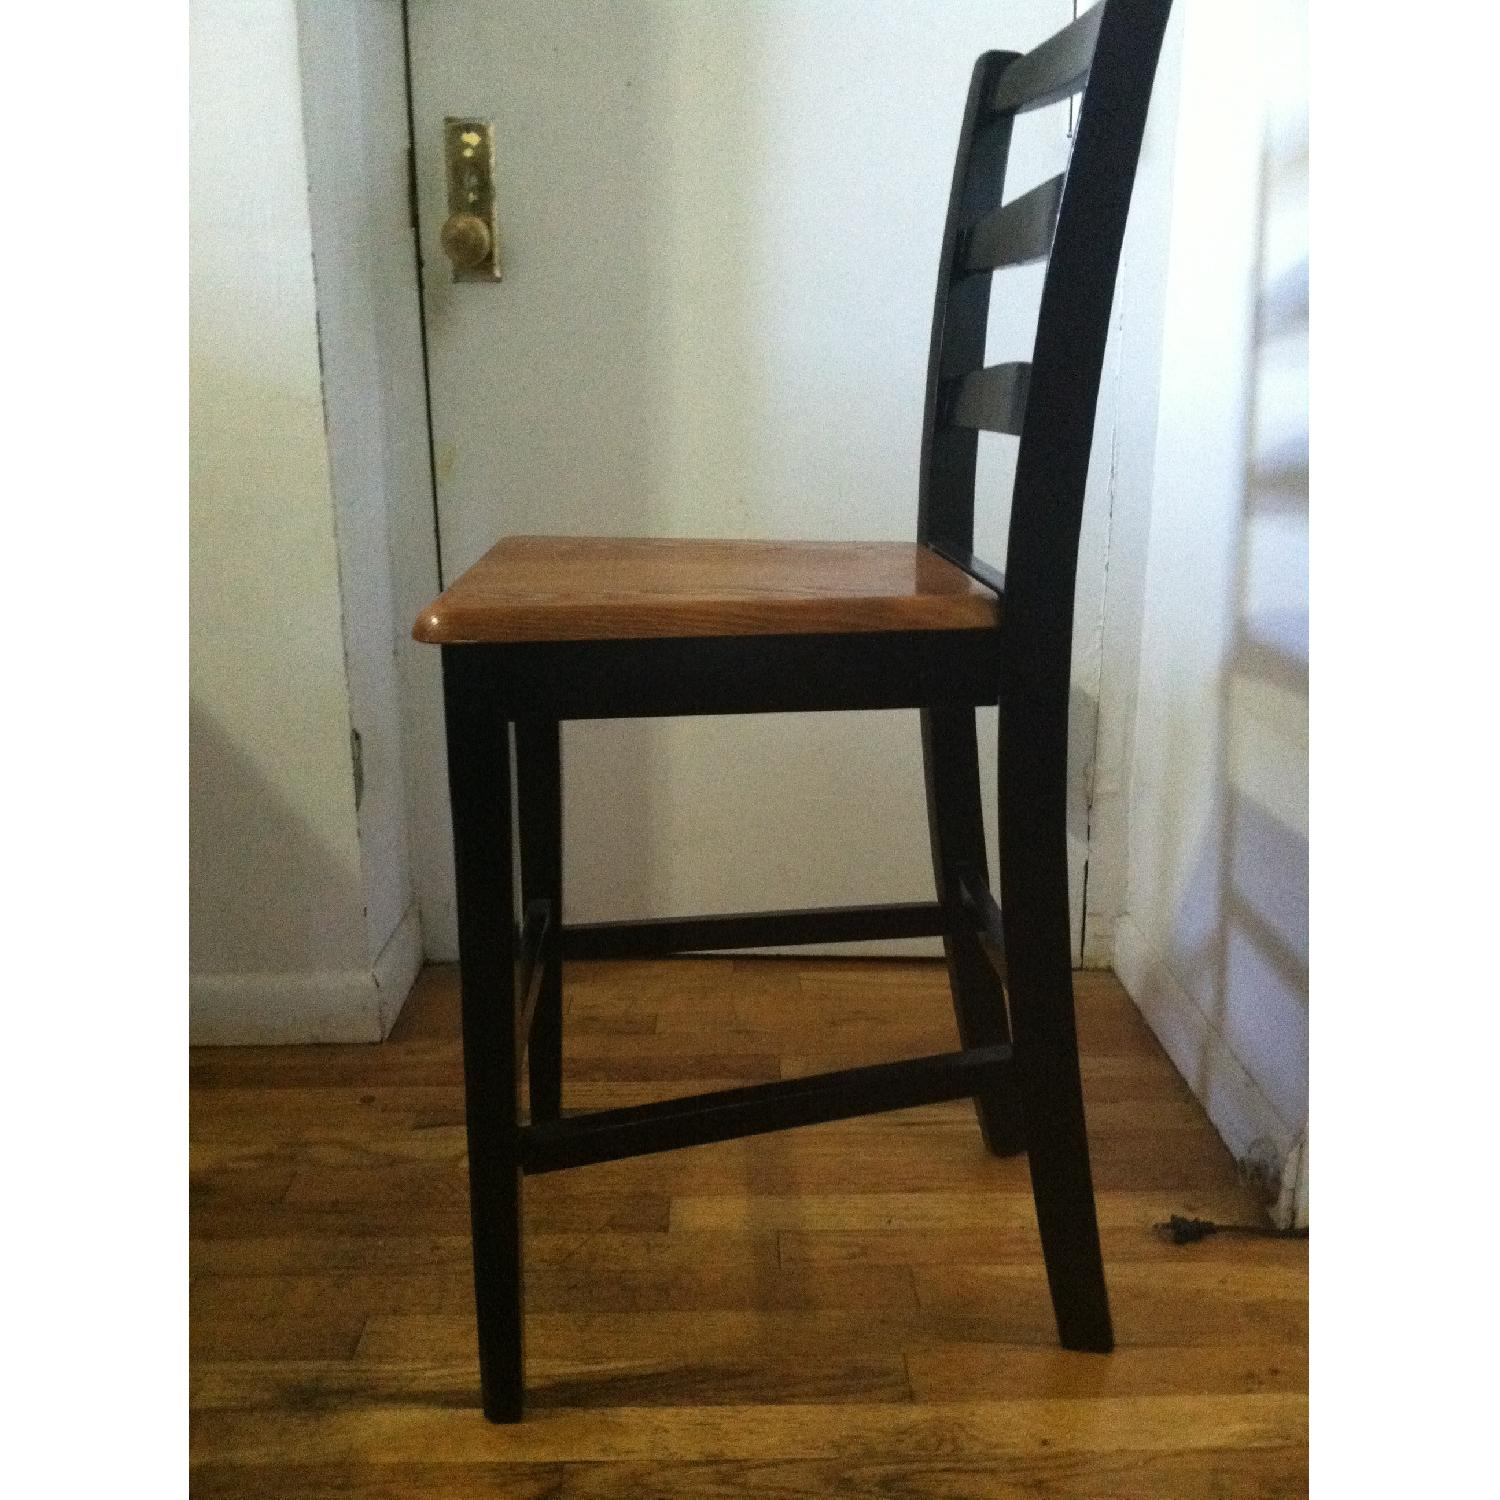 Tall Kitchen Table w/ 4 Chairs